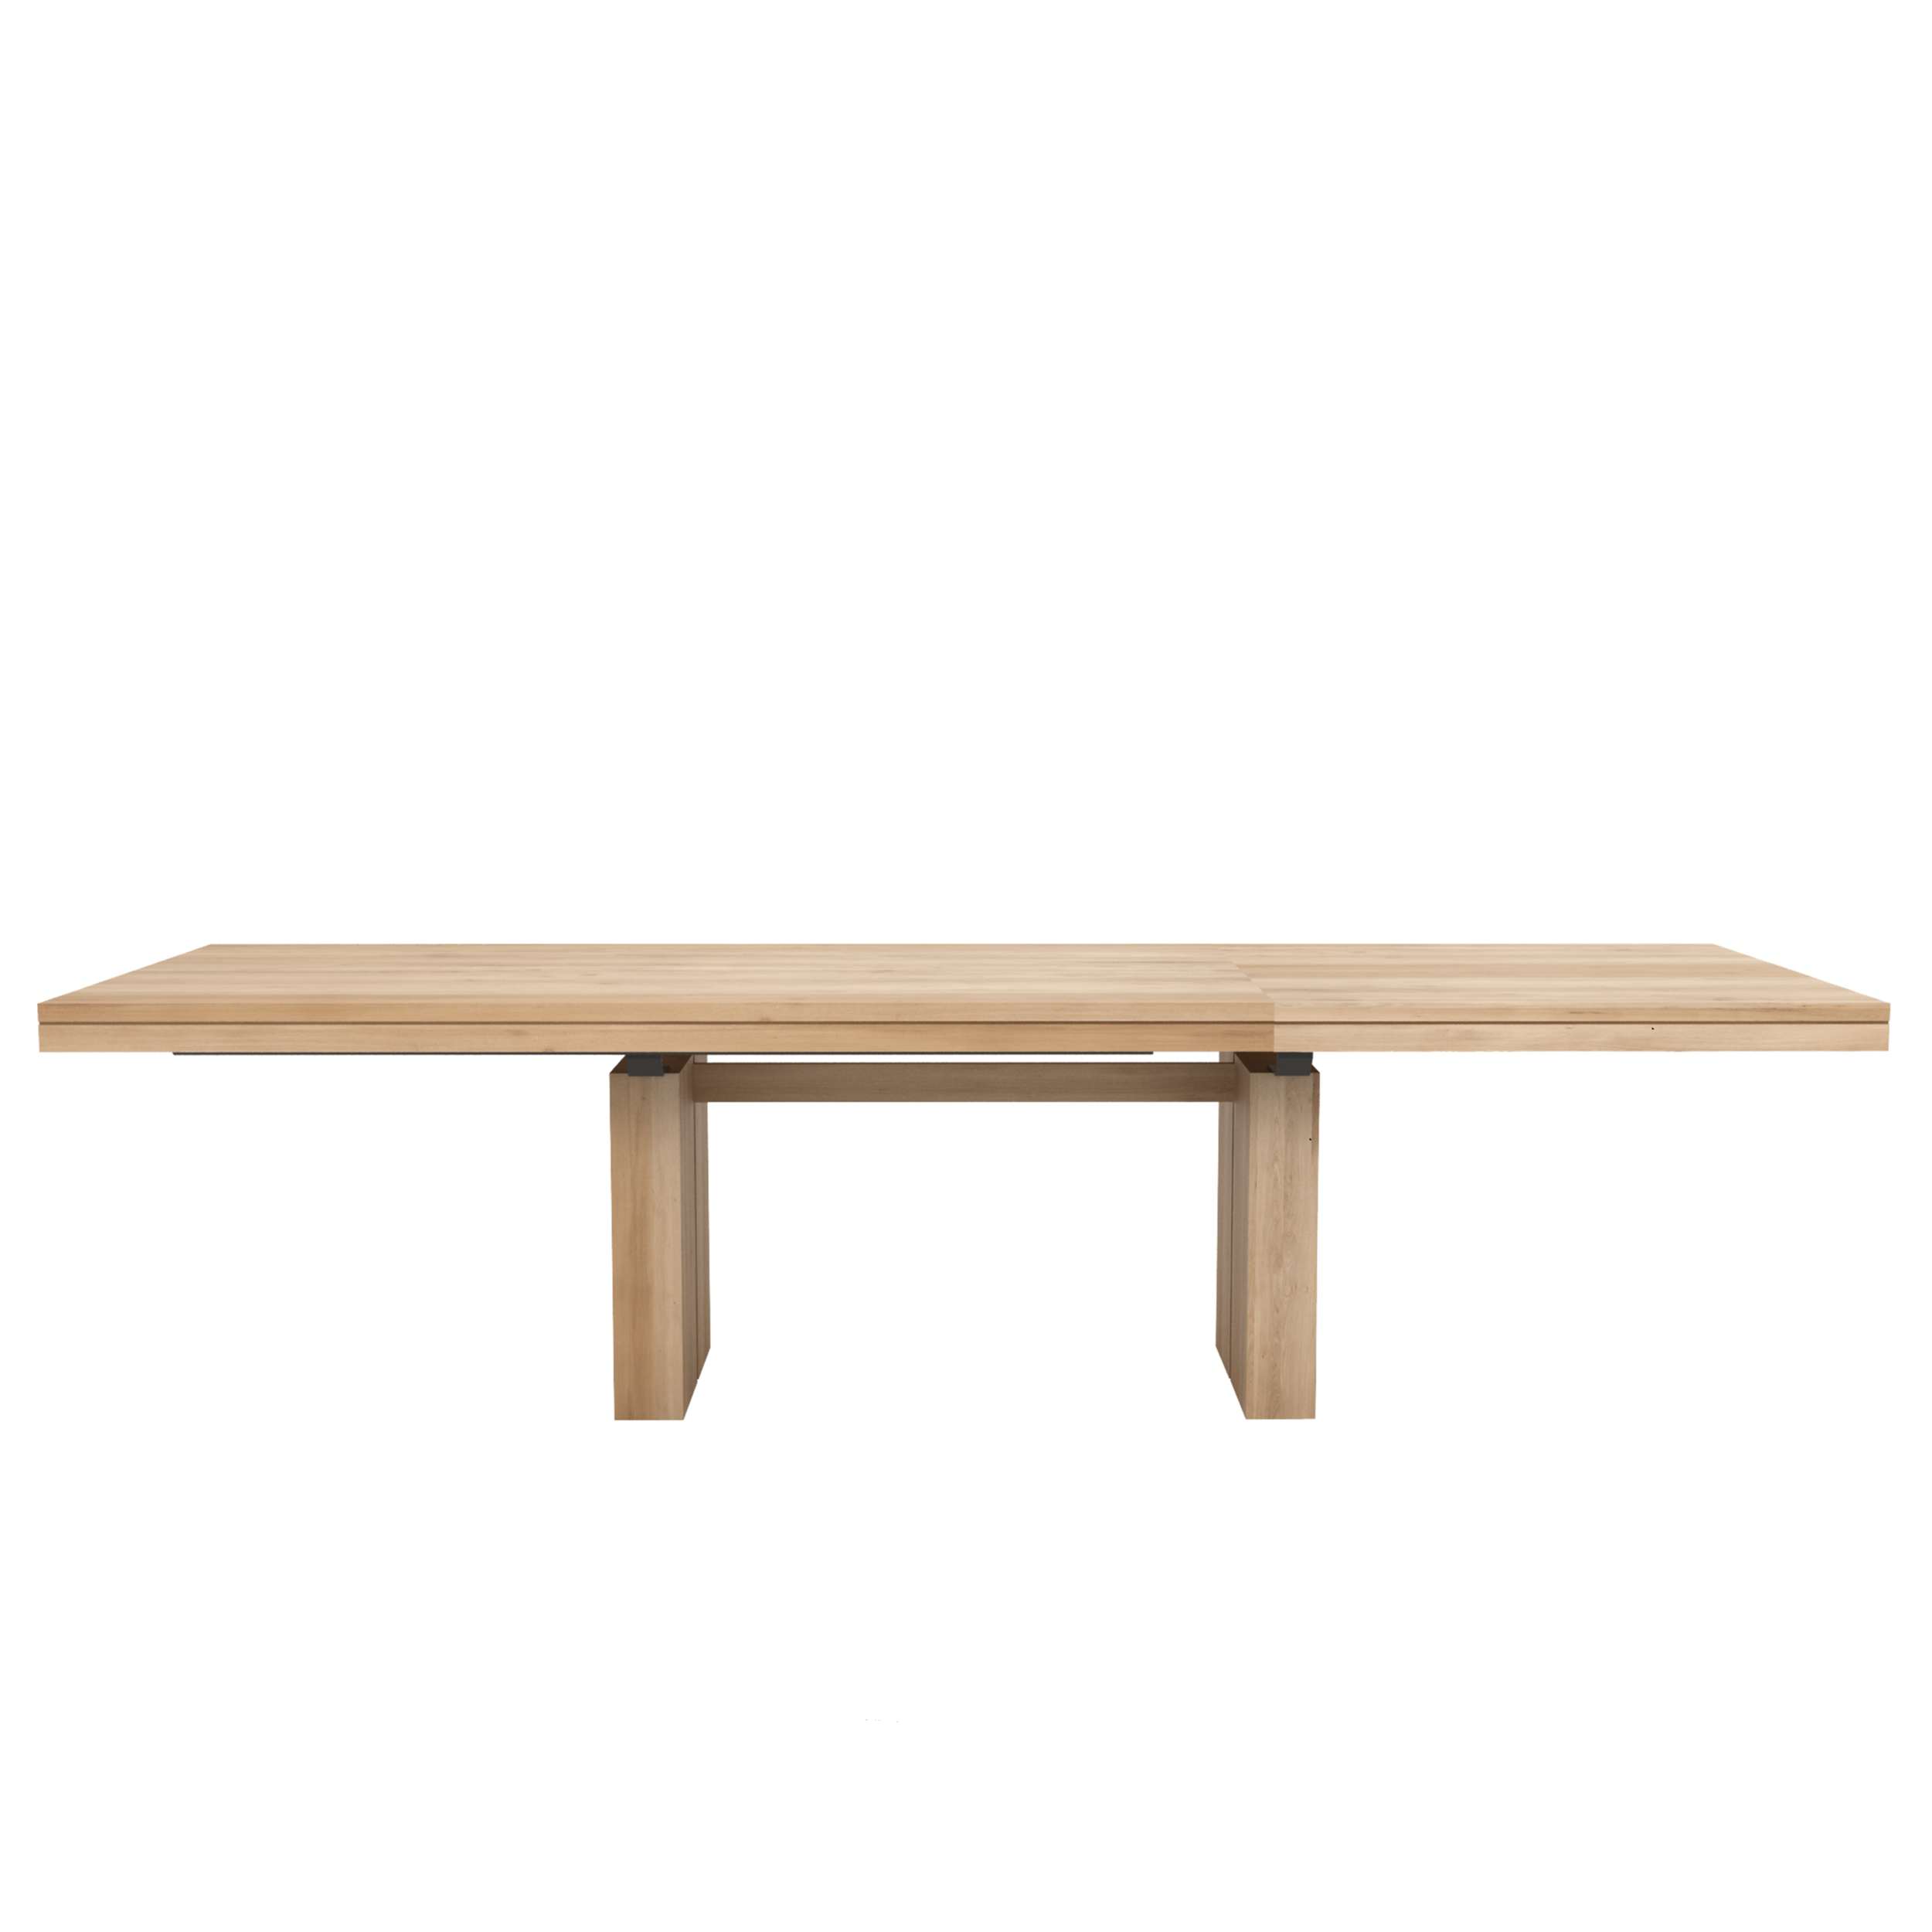 52066 Double extendable dining table - Oak.jpg.png